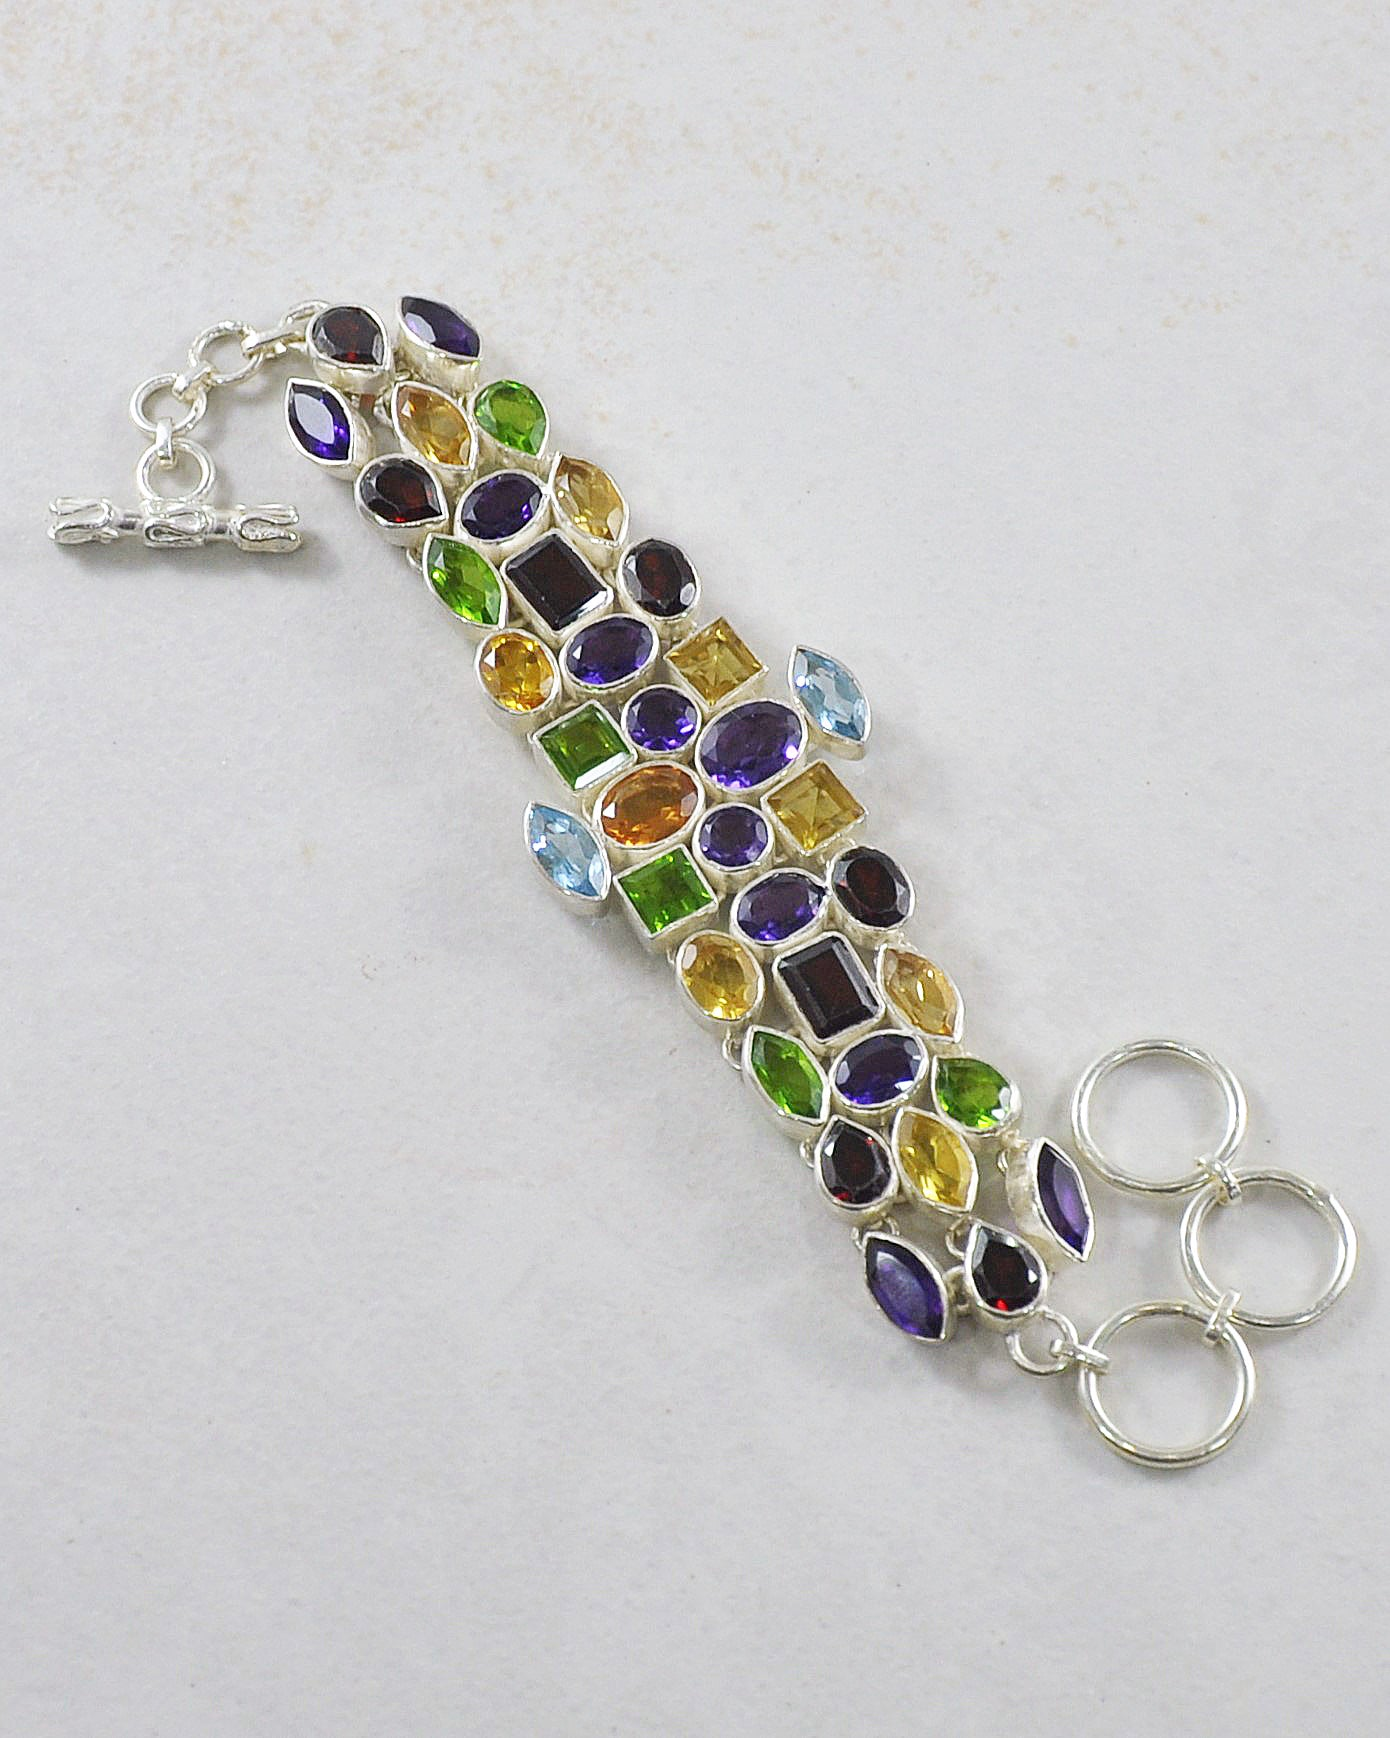 Constellation Multi Gemstone Bracelet in 925 Sterling Silver